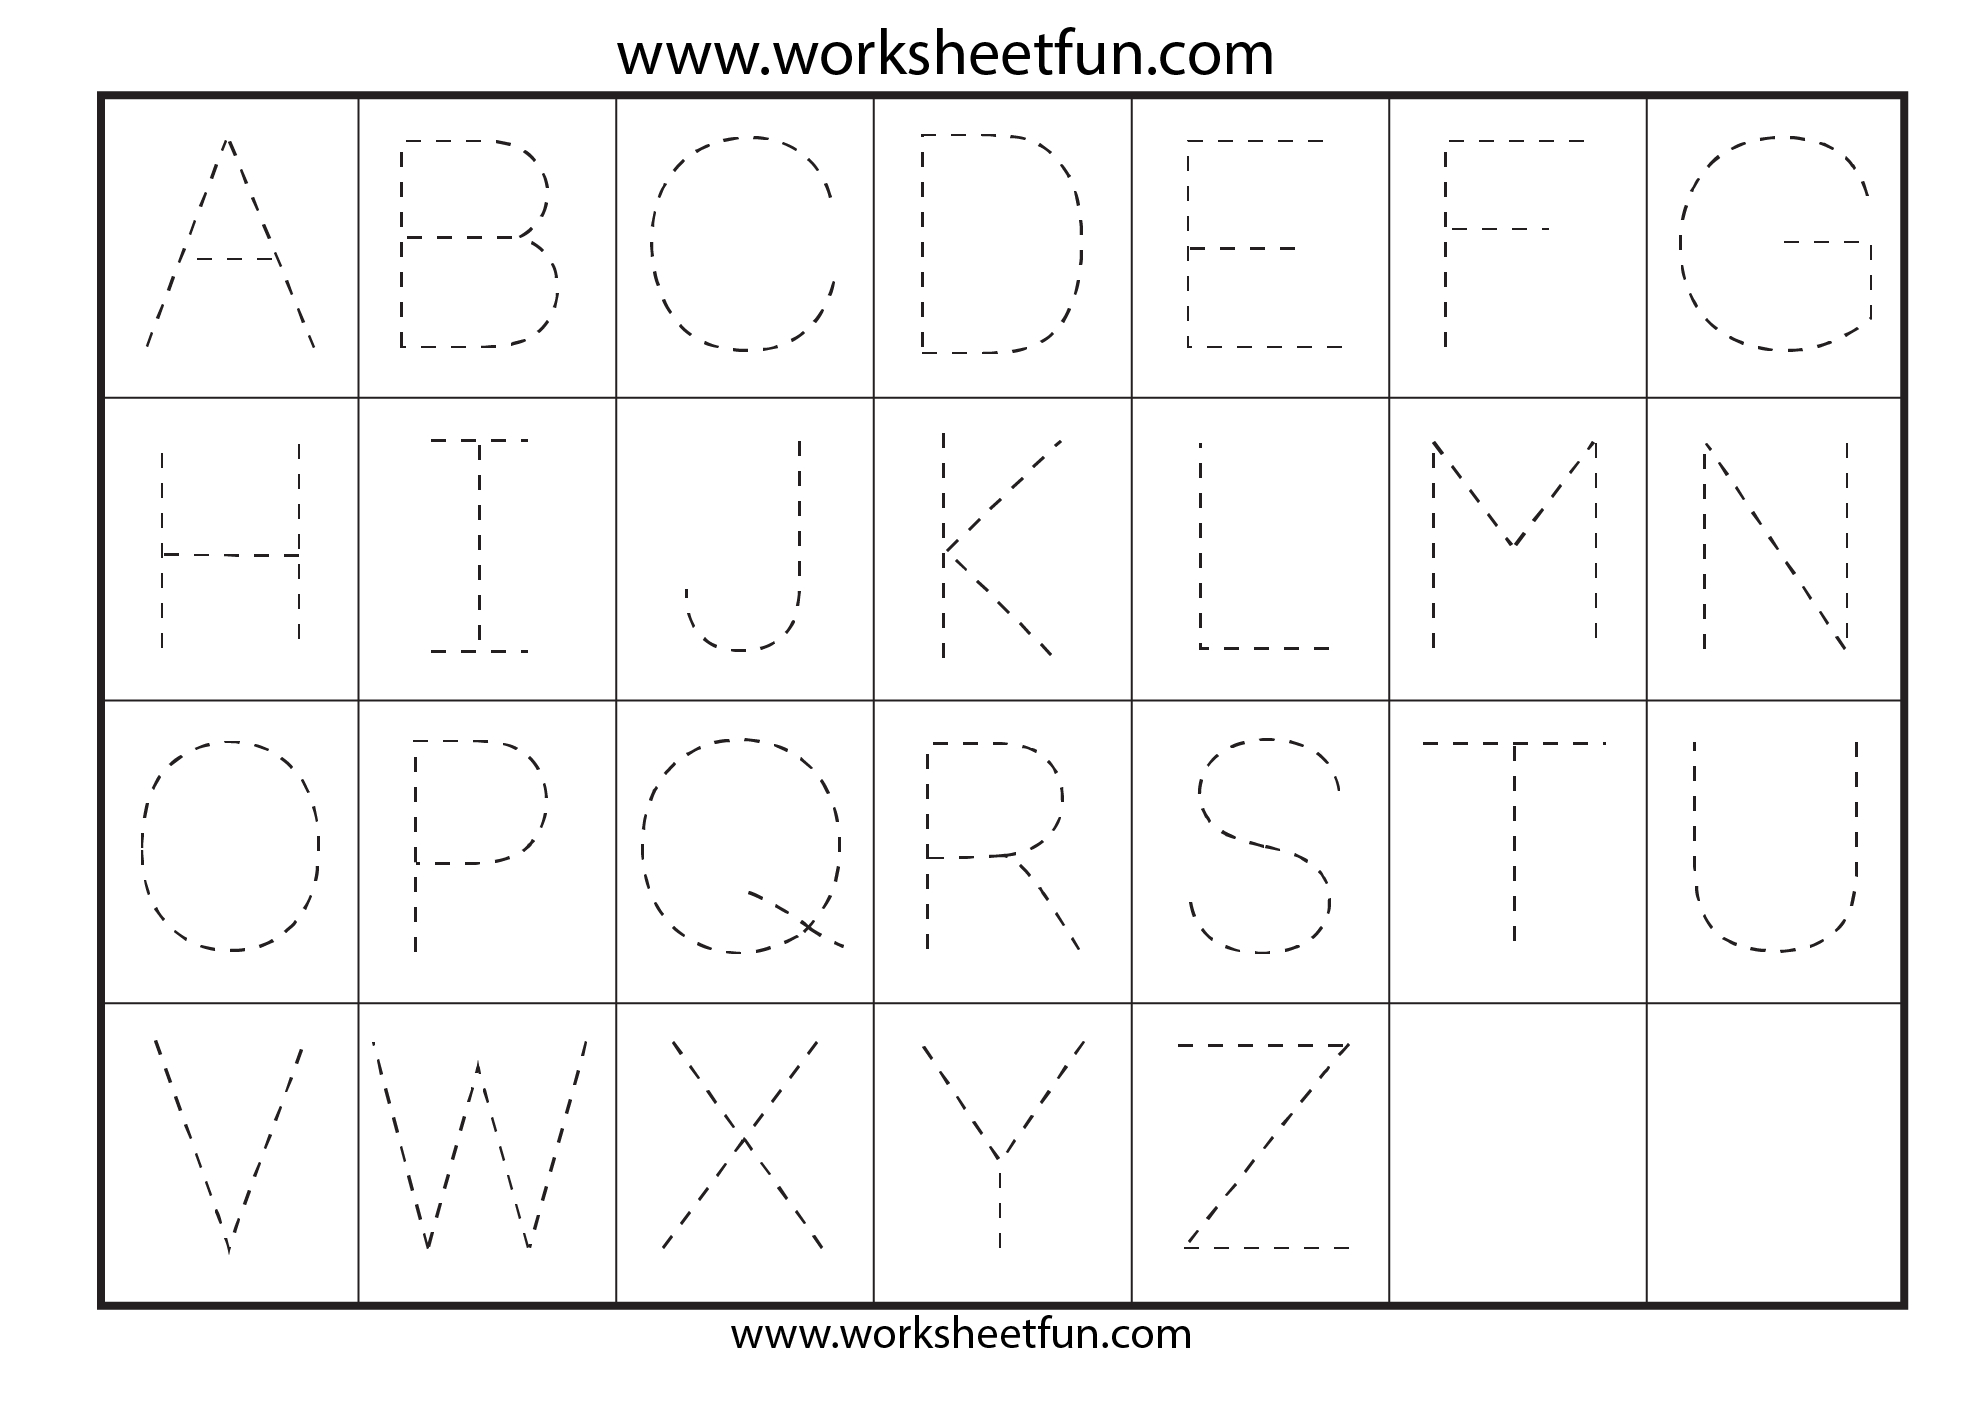 Letter Tracing Worksheets For Kindergarten - Capital Letters pertaining to Tracing Capital Letters Worksheets